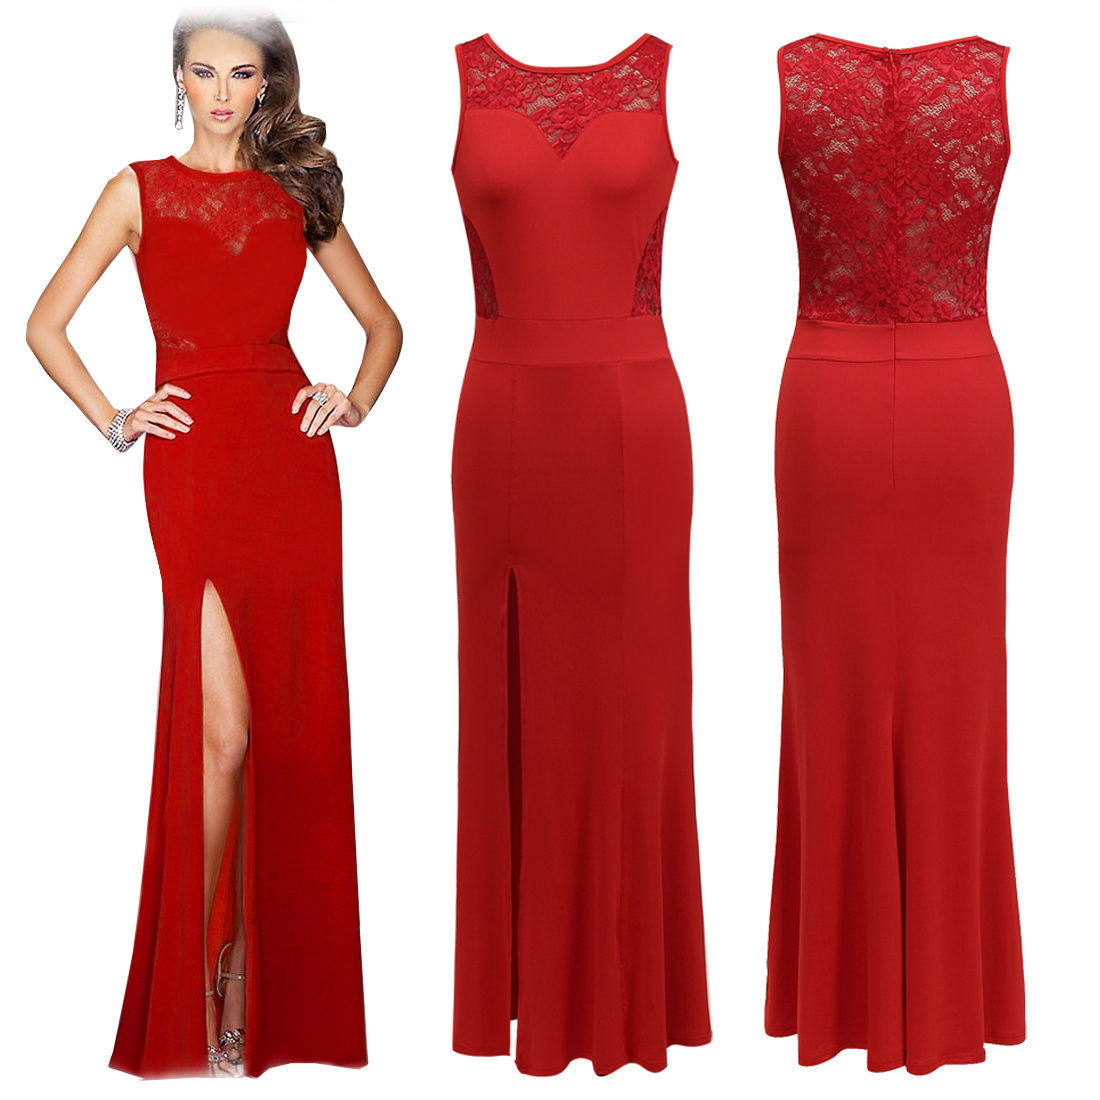 Женское платье New Women 2015 Sexy Lace Elegant Gown Evening Dresses женское платье sexy long dresses sexy 2015 v vestido lya1333